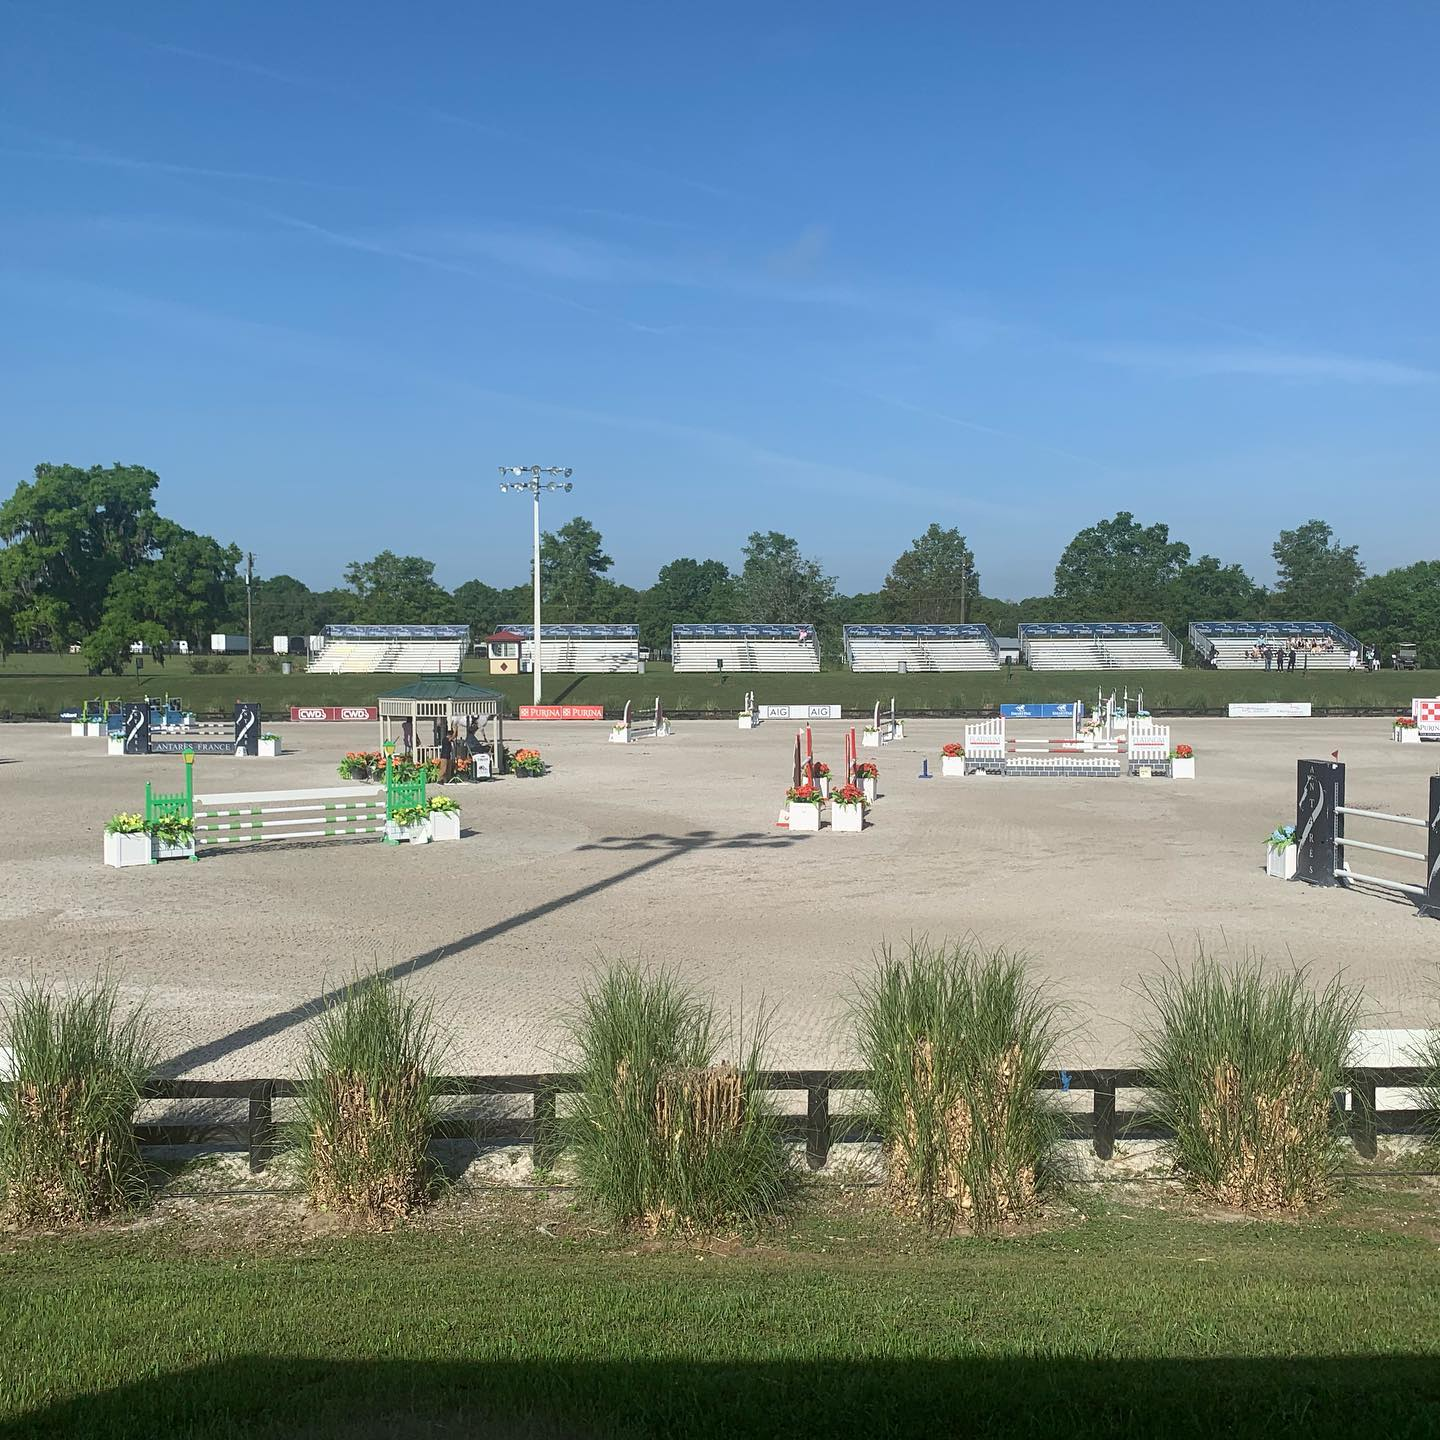 It's great weather for a million dollar Grand Prix ! @hitshorseshows #manewayz #grandprix #showjumping